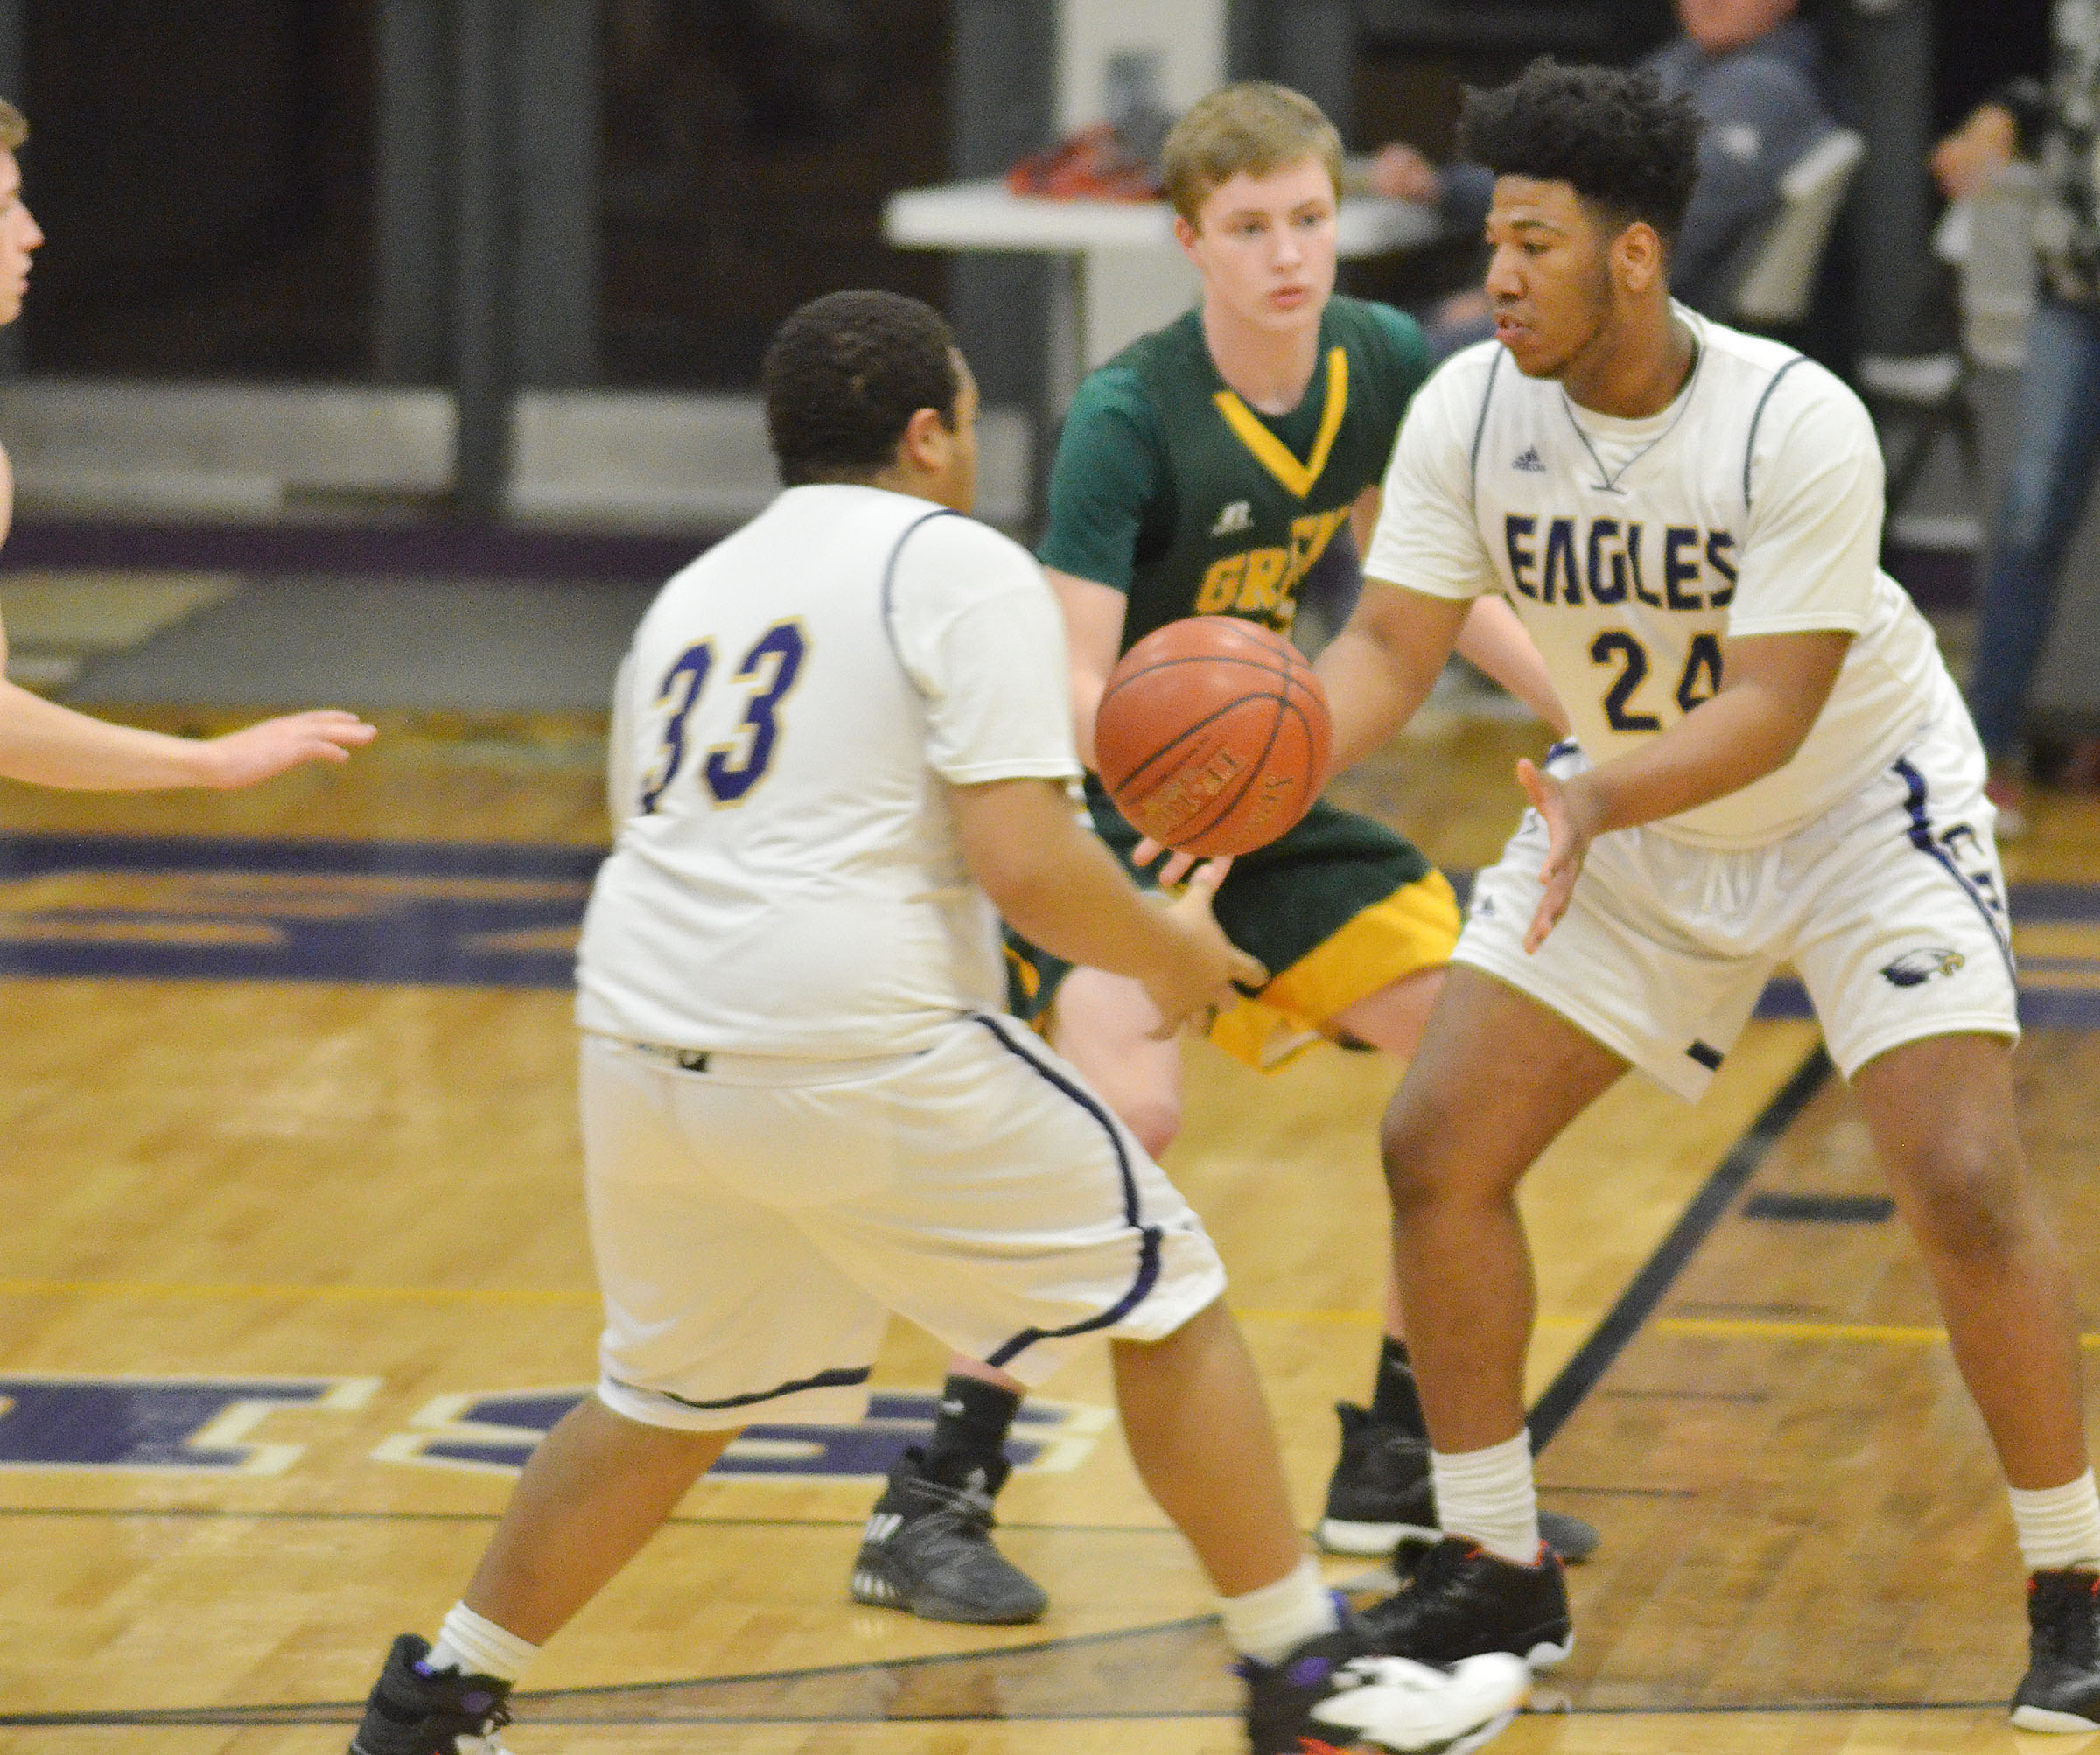 CHS senior Ricky Smith-Cecil passes the ball to fellow senior Micah Corley.